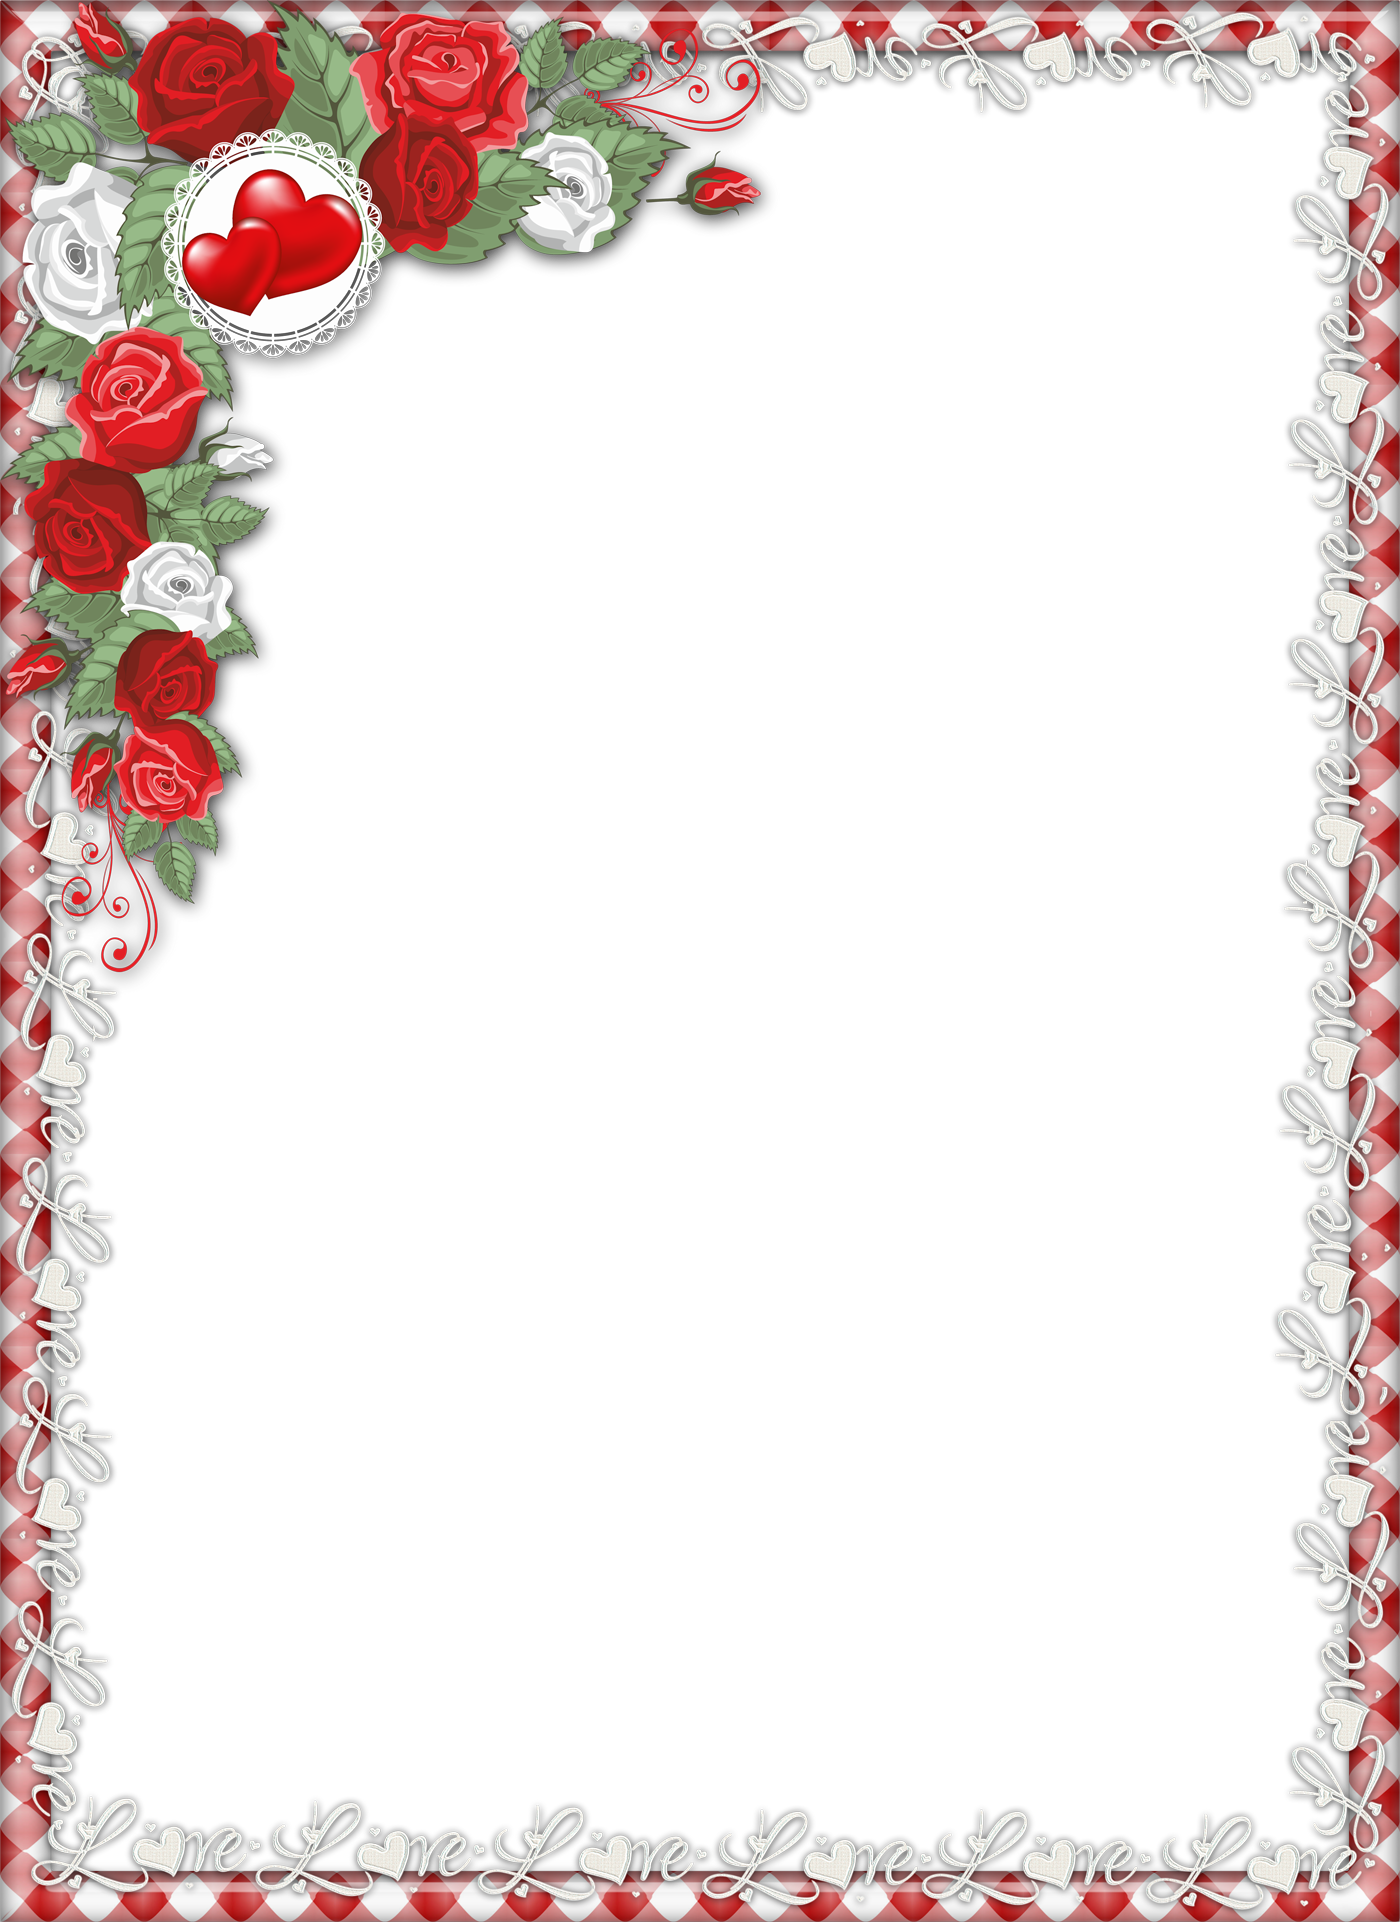 Love borders and frames png. Red transparent frame with